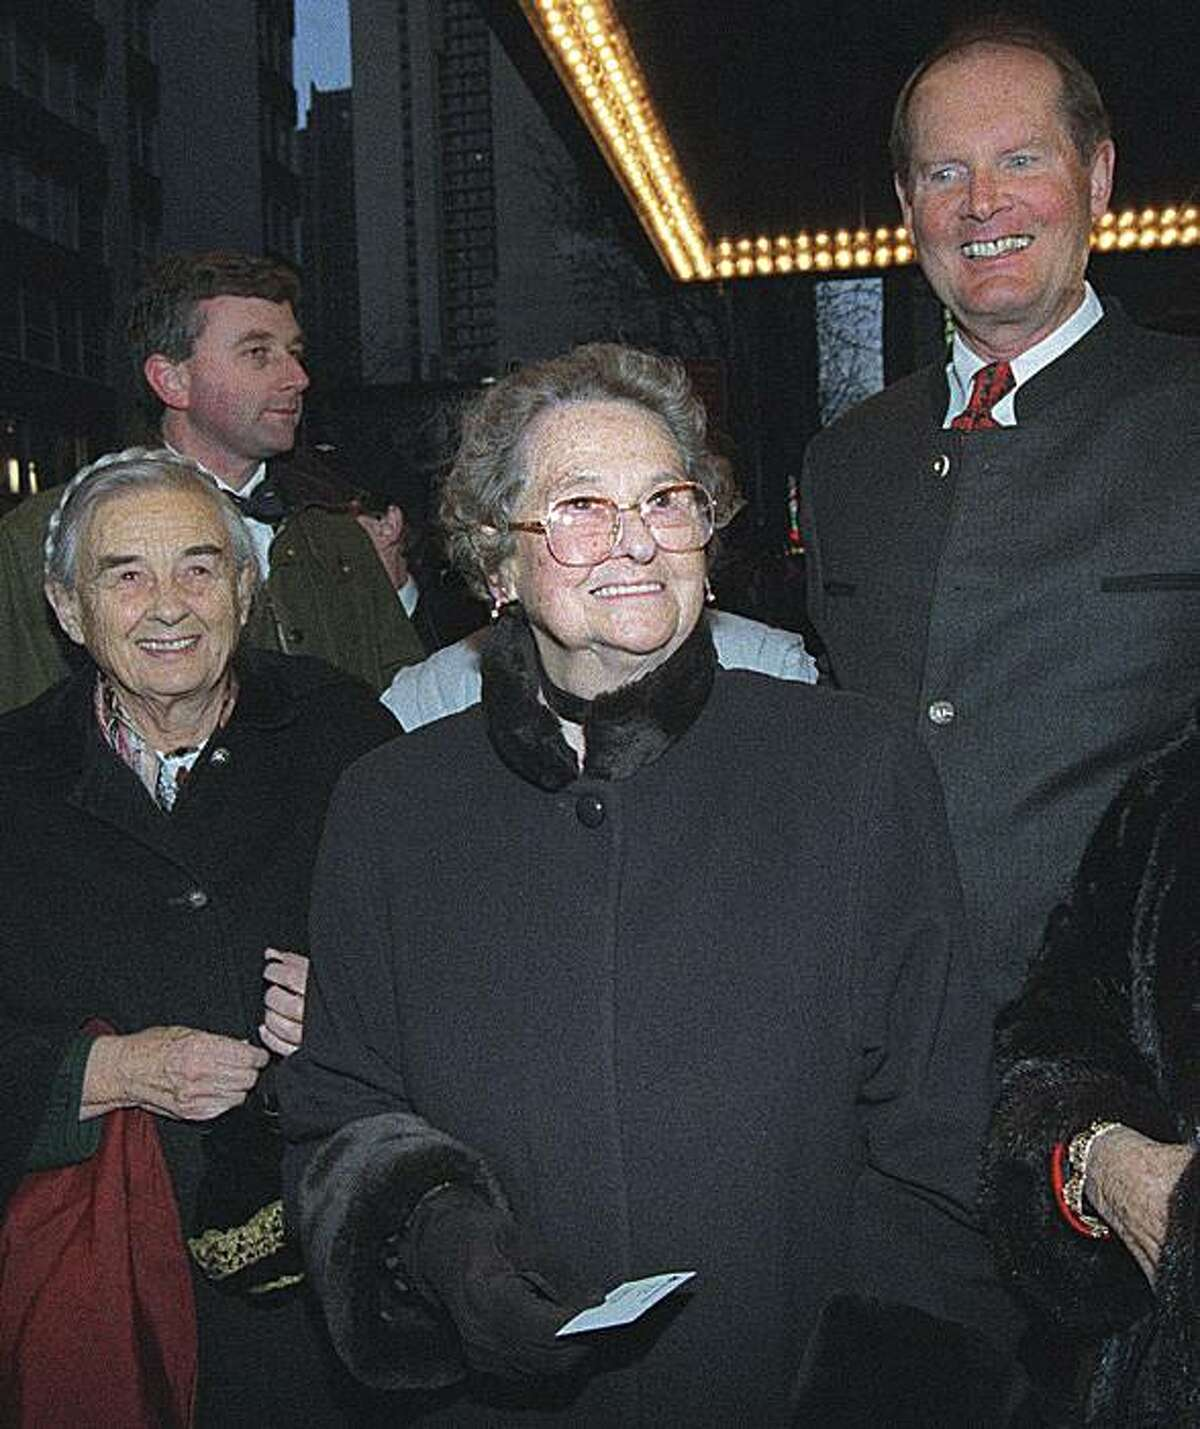 """In this March, 12, 1998 file photo, Agathe von Trapp, center, arrives with her sister, Maria, left, and brother, Johannes, right, at the Martin Beck Theatre to see the reopening of the Broadway musical """"The Sound of Music"""" in New York. Agathe von Trapp died Tuesday, Dec. 28, 2010 in Townson, Md. She was 97."""